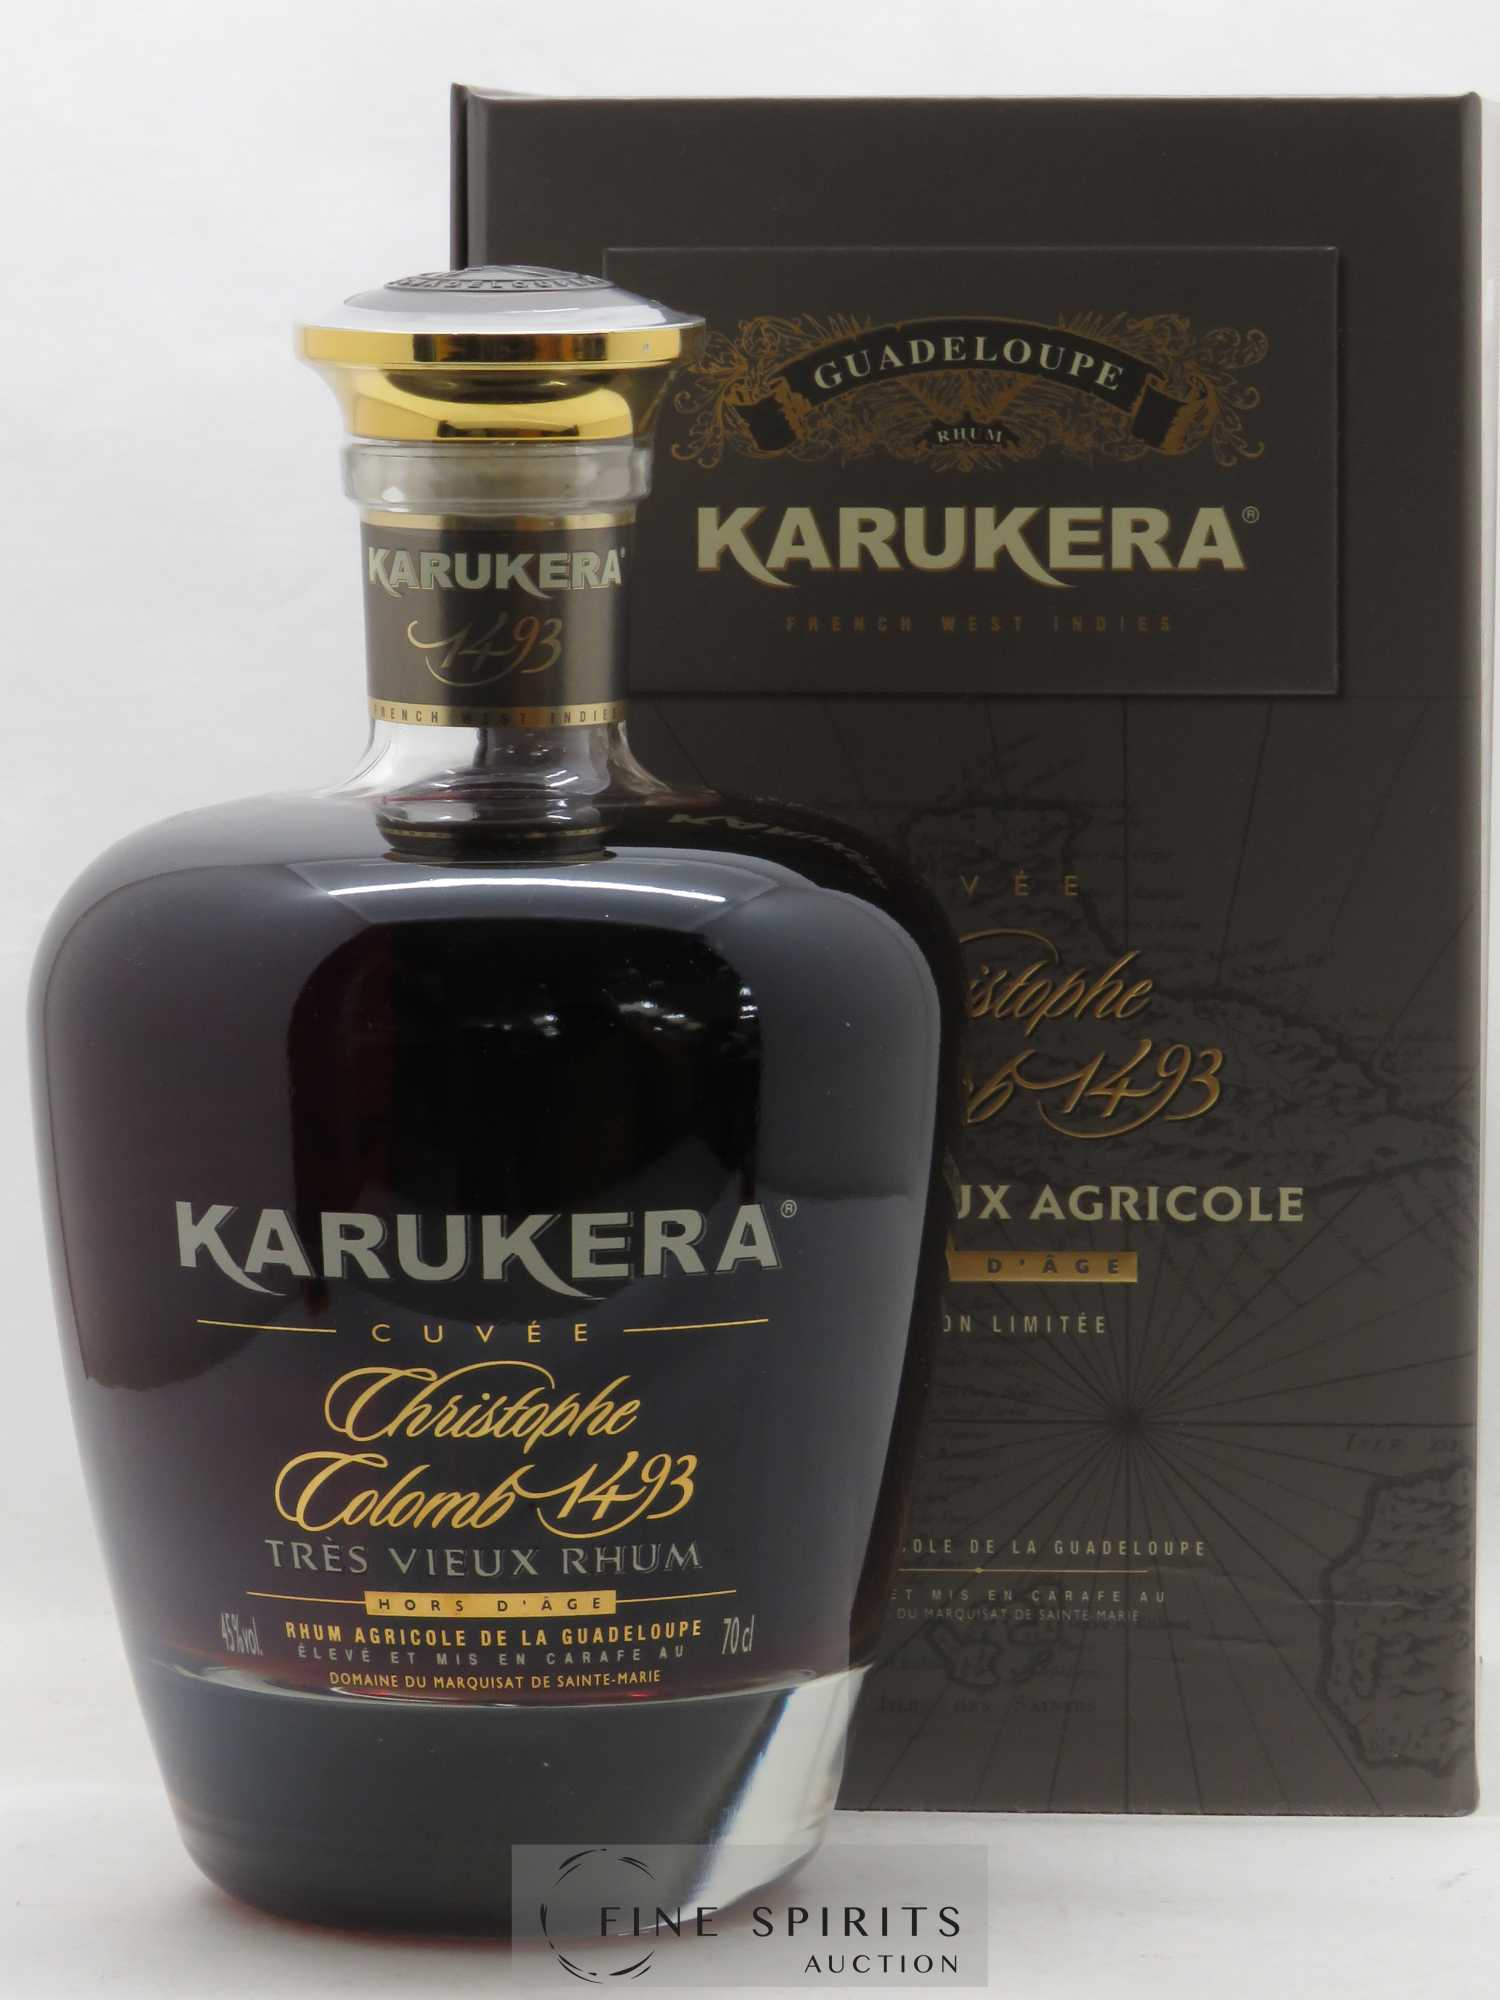 Rhum Karukera Of. Cuvee Christophe Colomb 1493   - Lot de 1 Bouteille